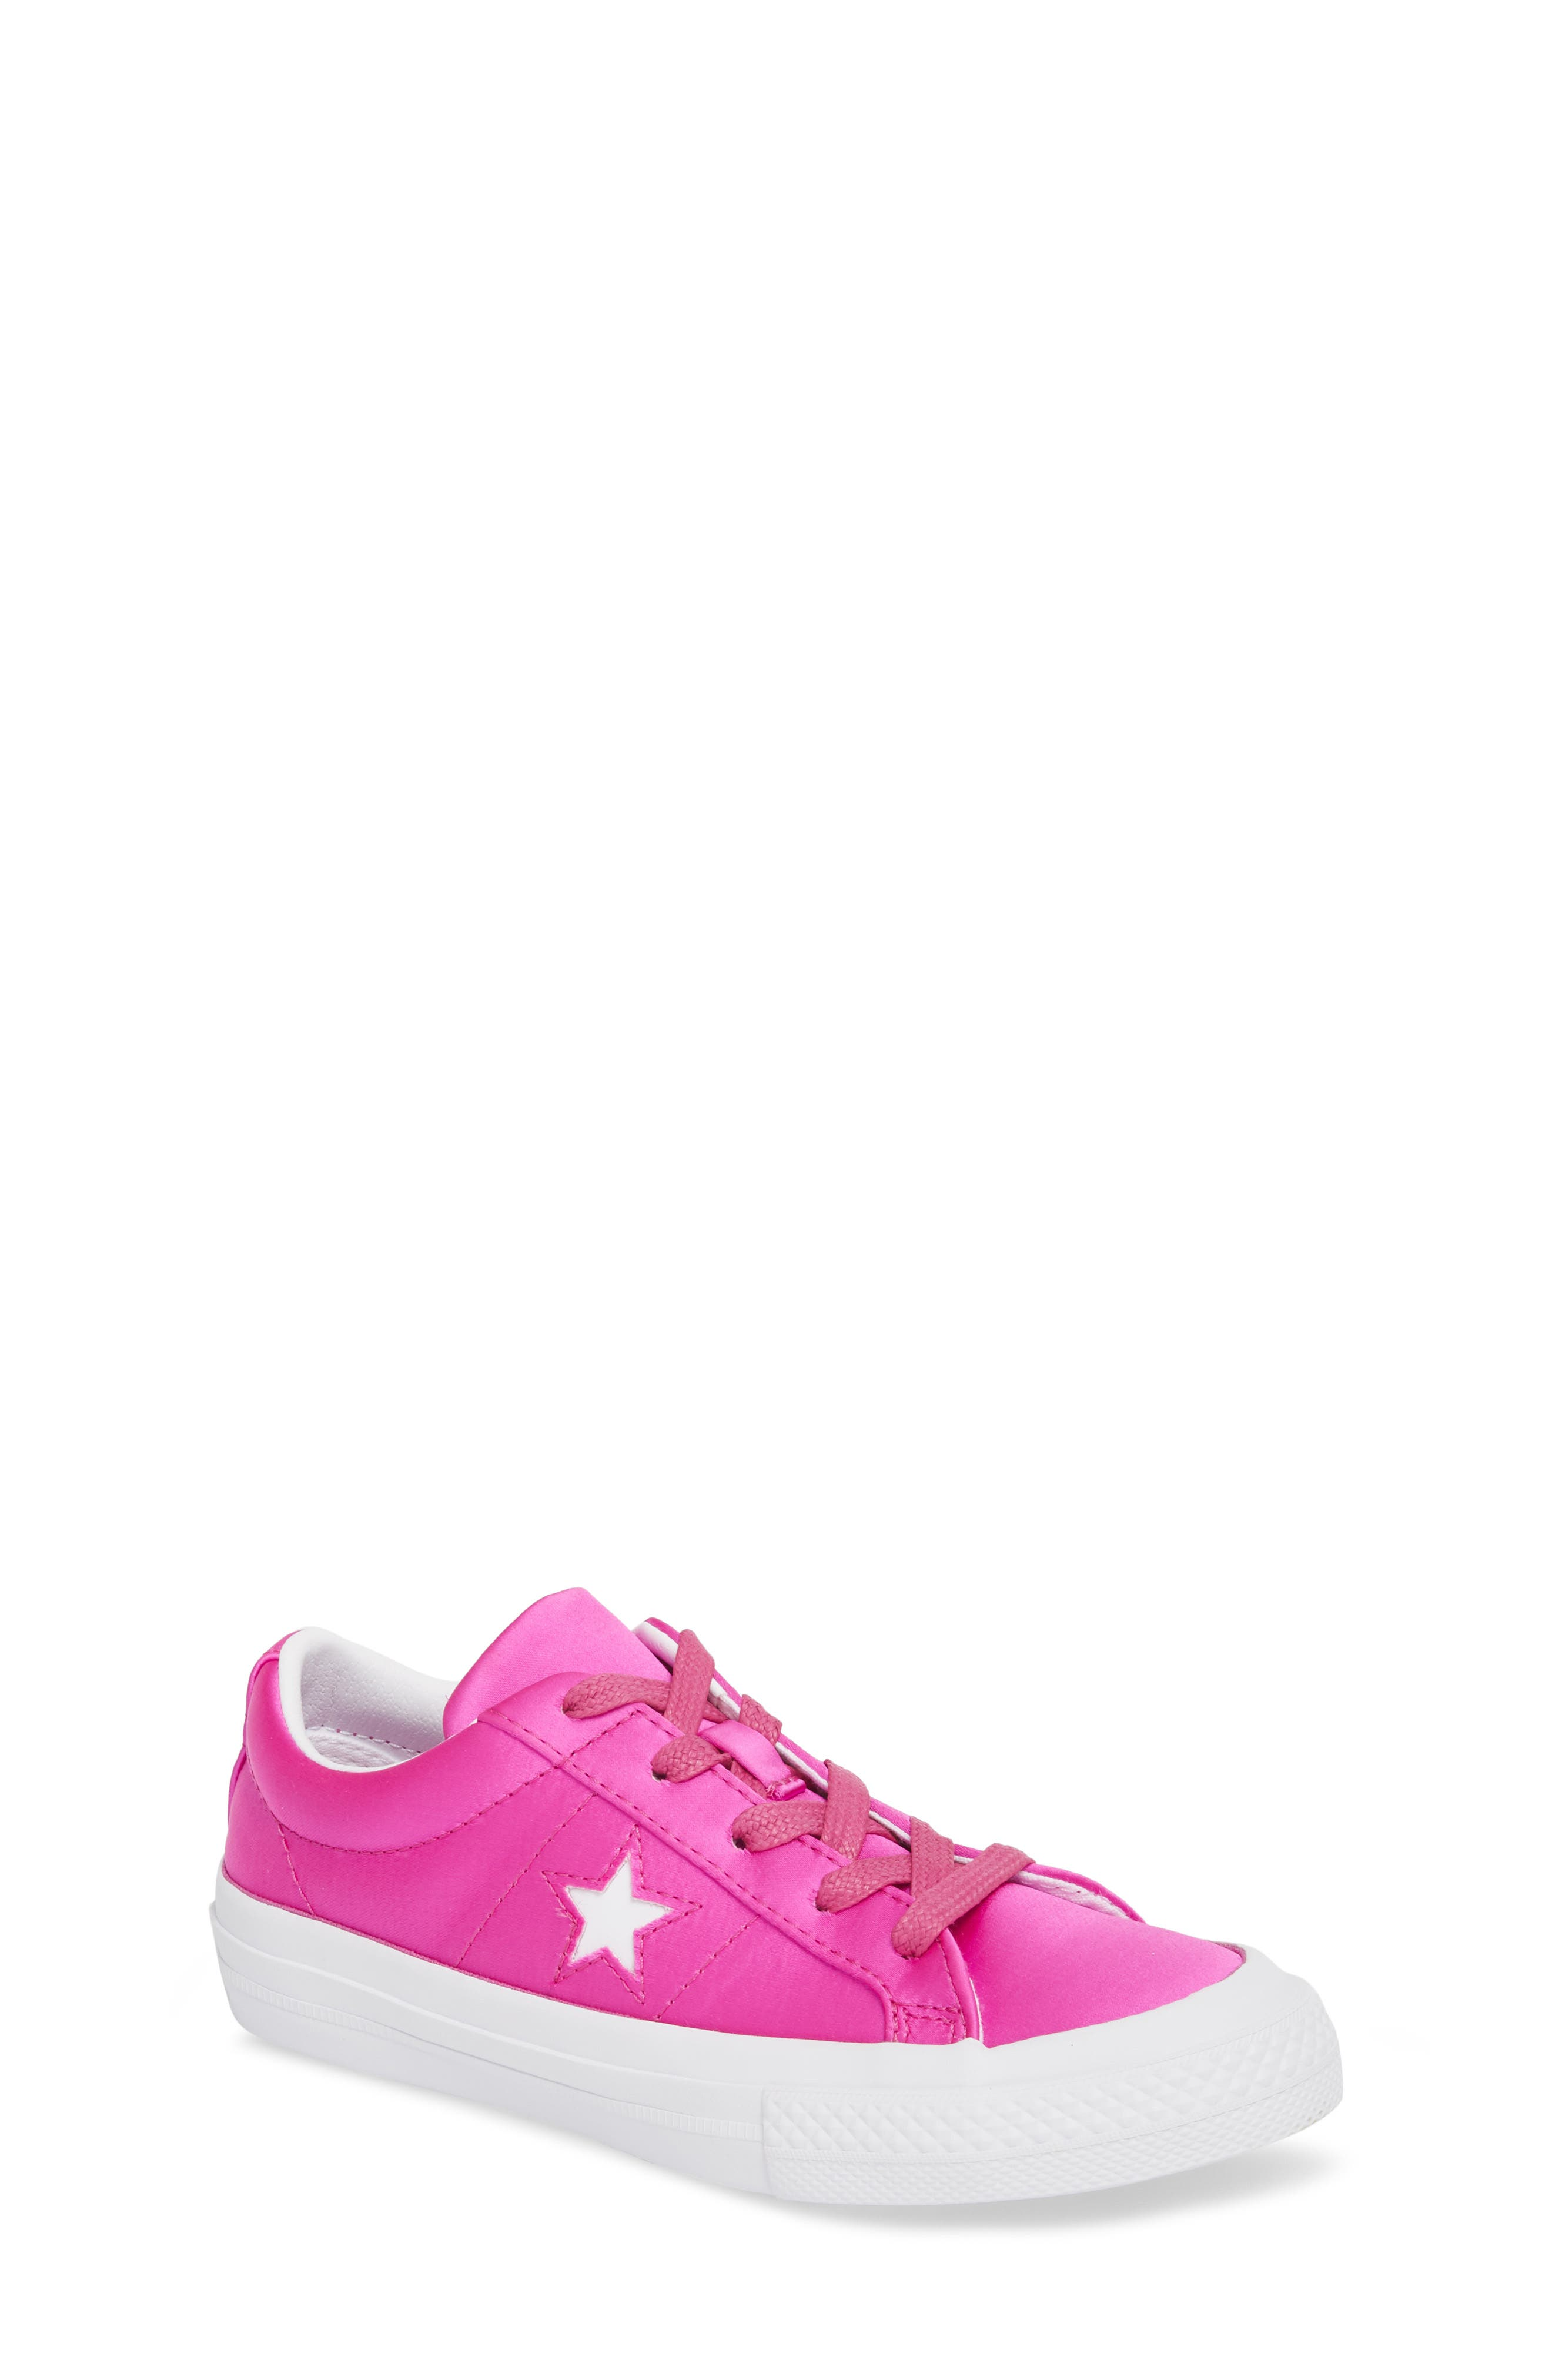 Converse Chuck Taylor® All Star® One Star Satin Low Top Sneaker (Toddler & Little Kid)